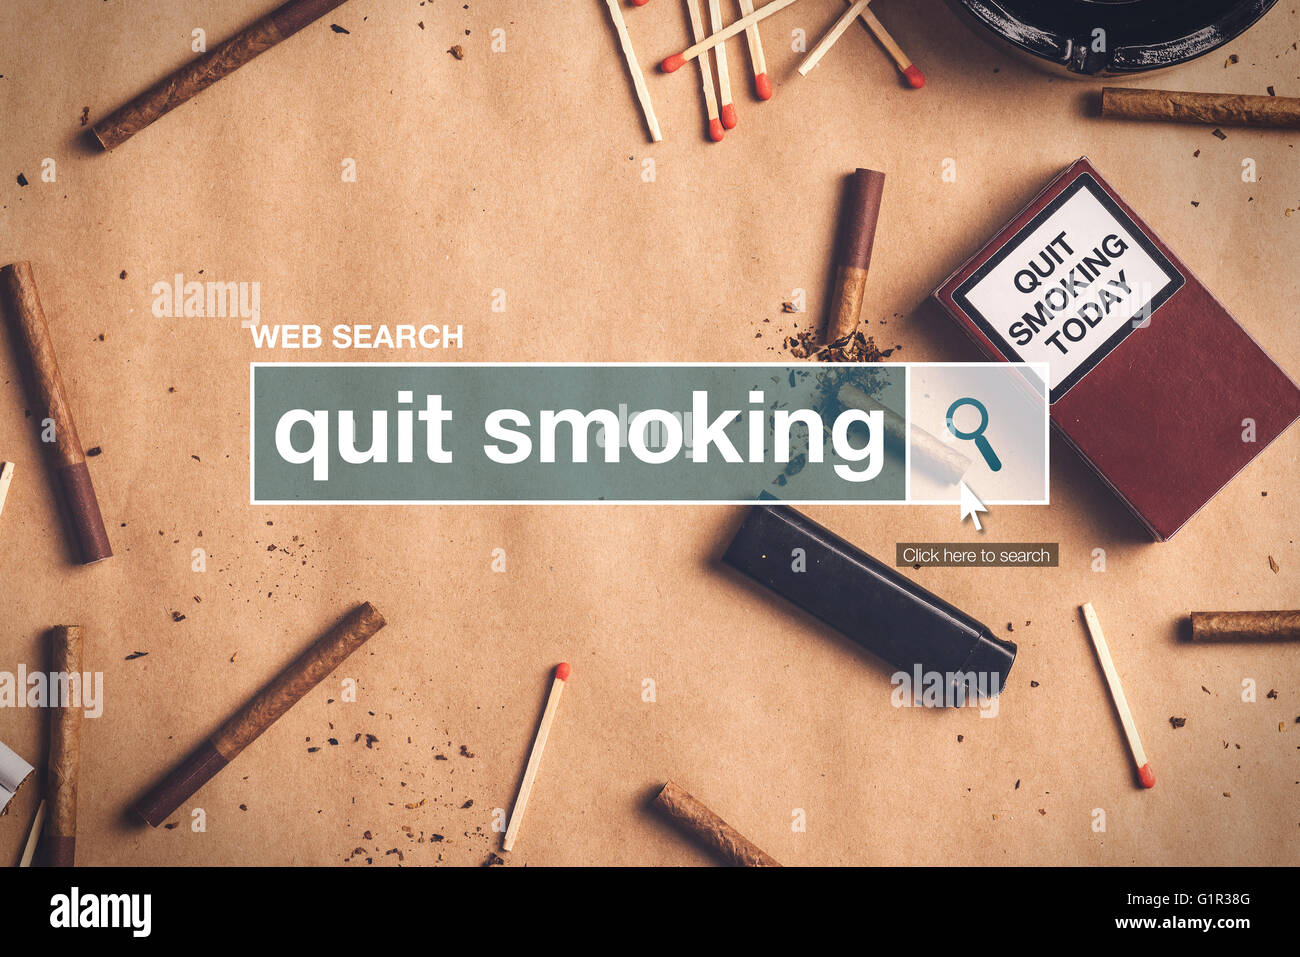 Quit smoking web search box glossary term on internet - Stock Image